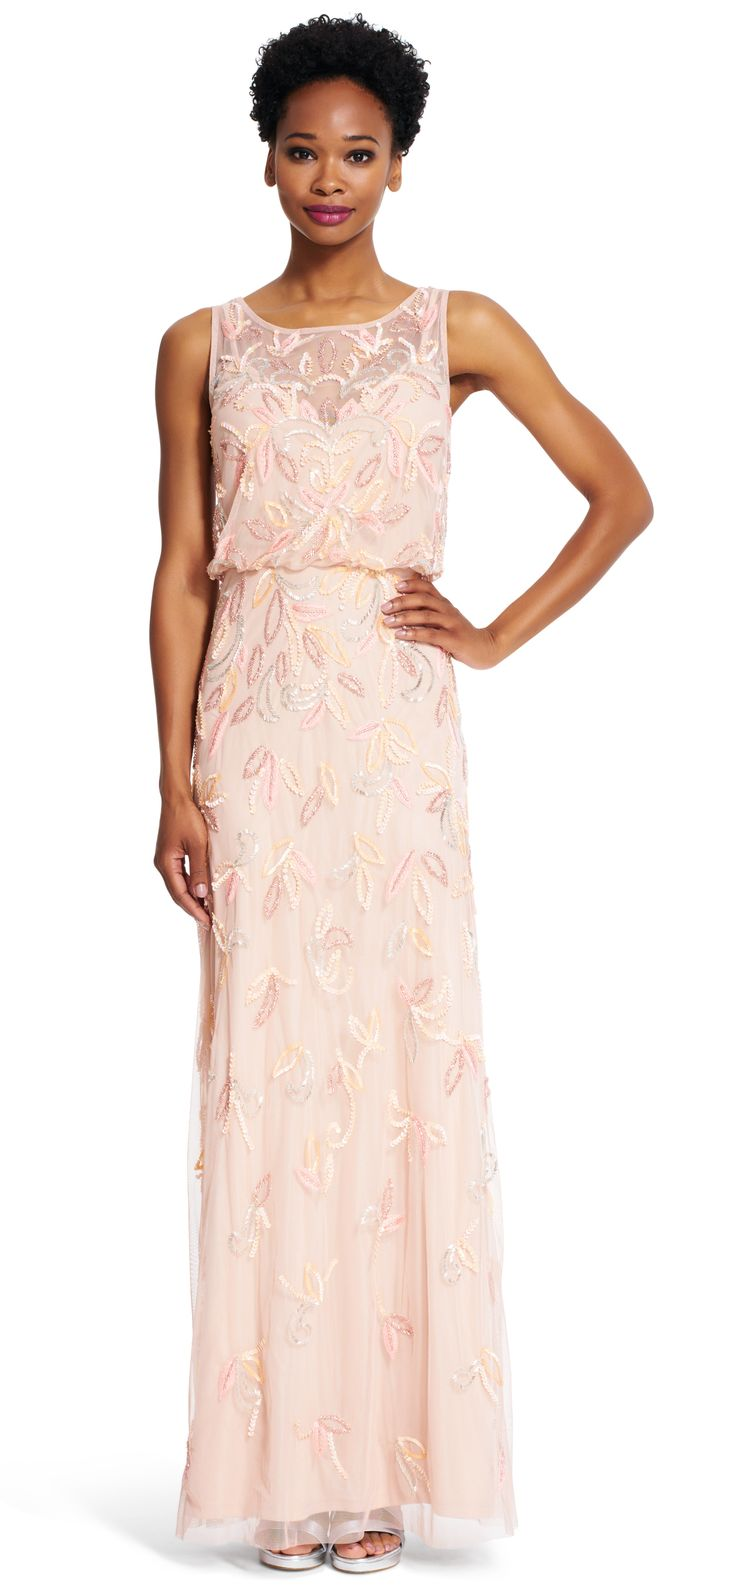 25 best ideas about adrianna papell on pinterest art for Adrianna papell wedding guest dresses